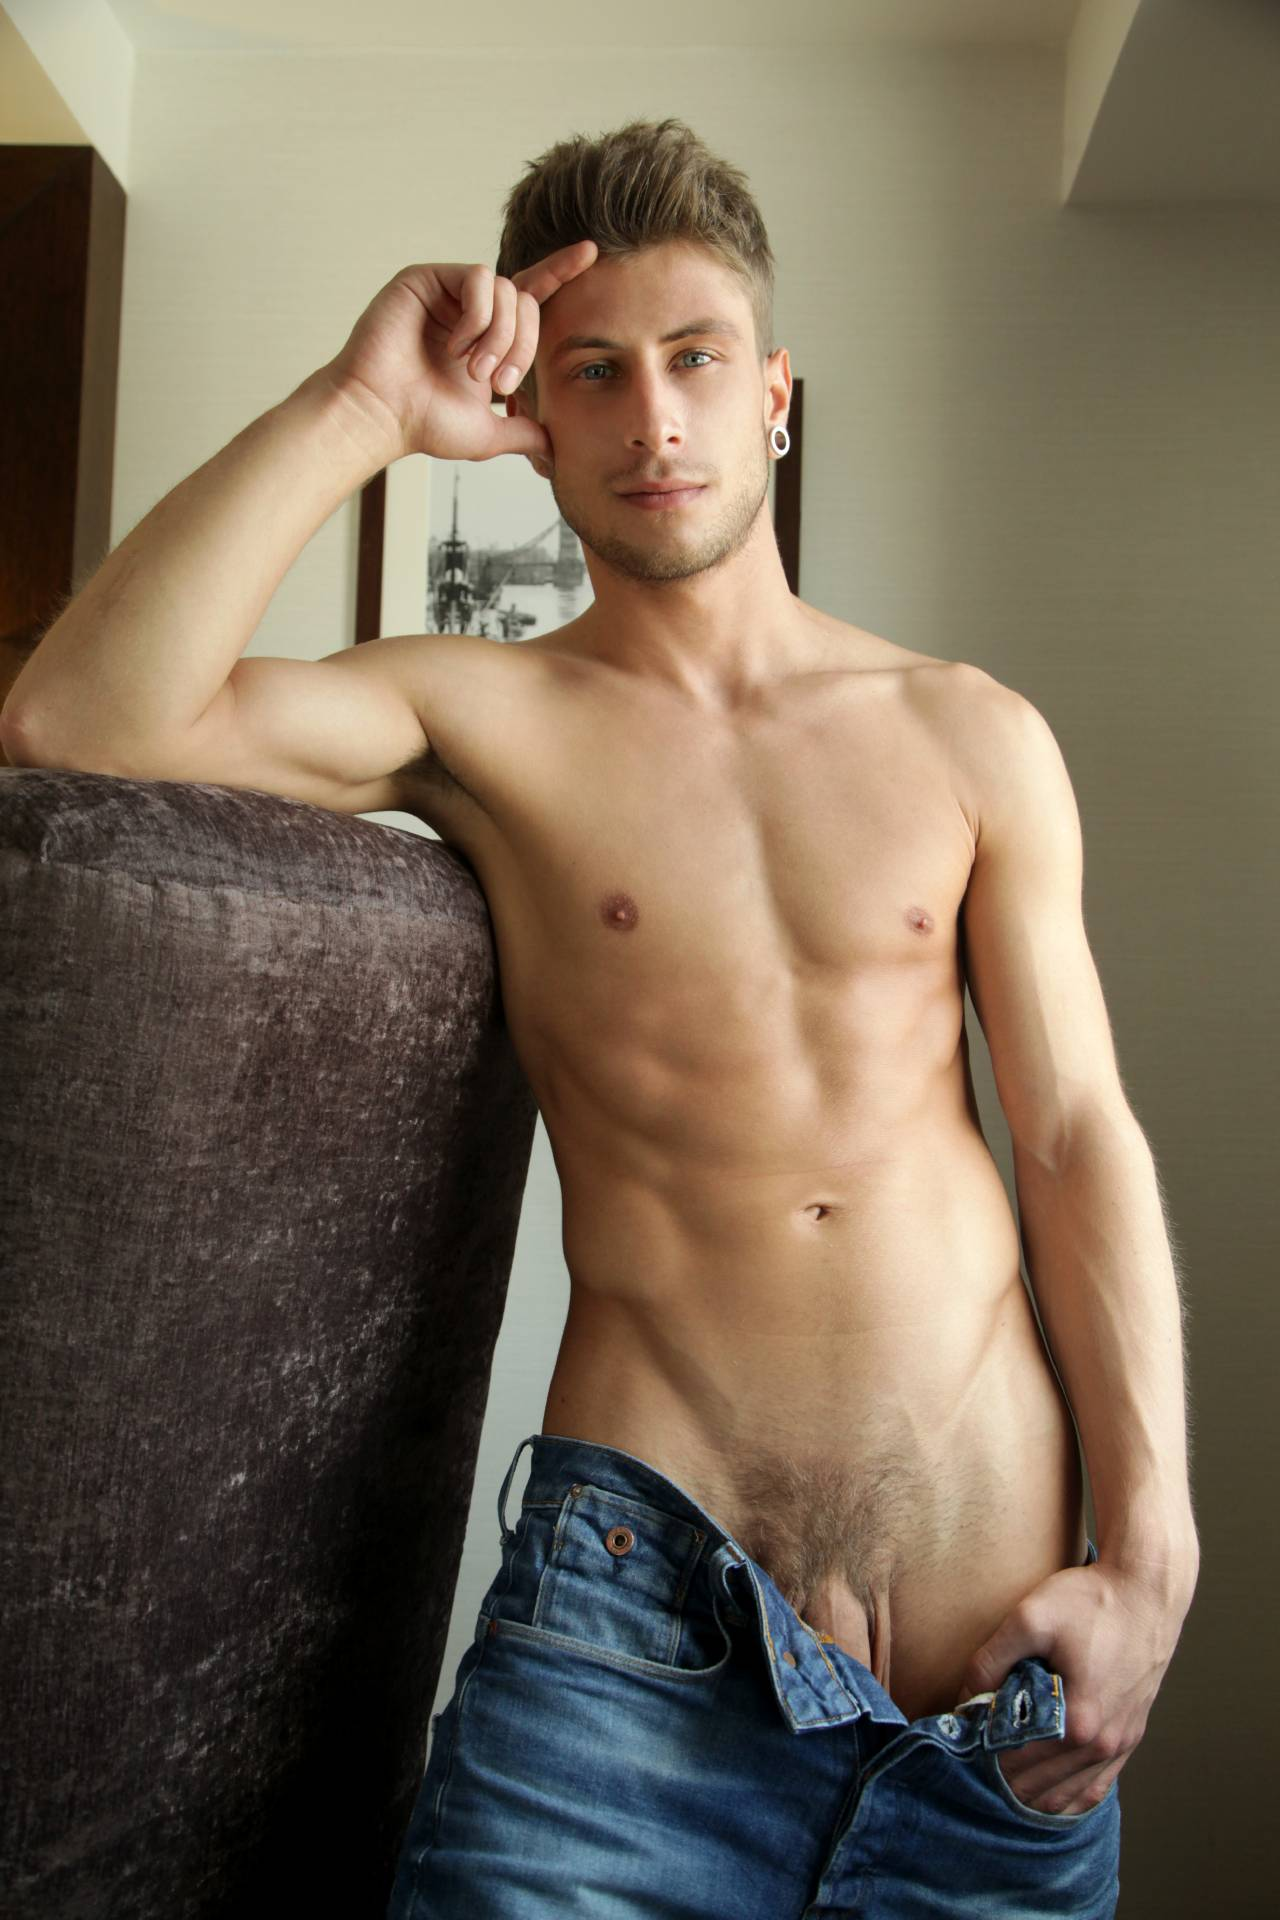 gay international man nude